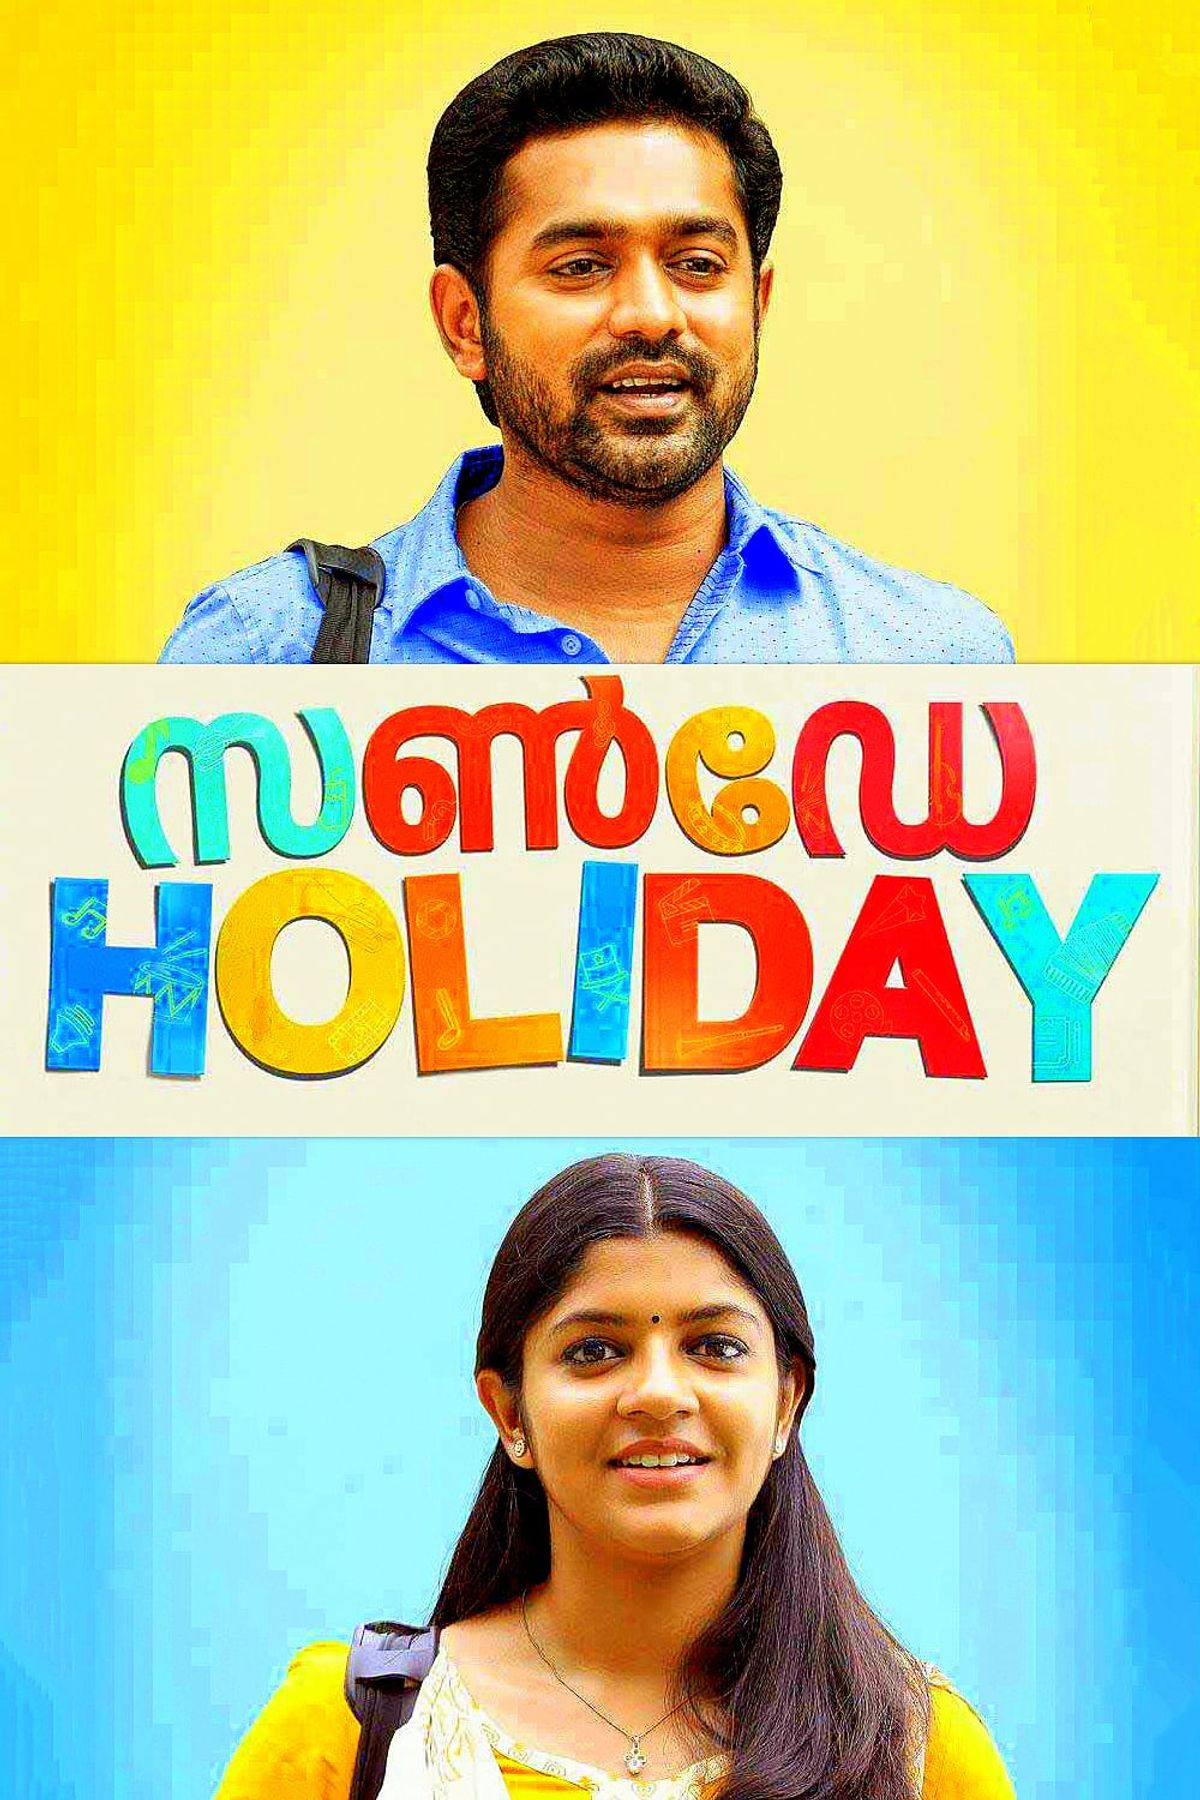 Aliyar Best Movies, TV Shows and Web Series List